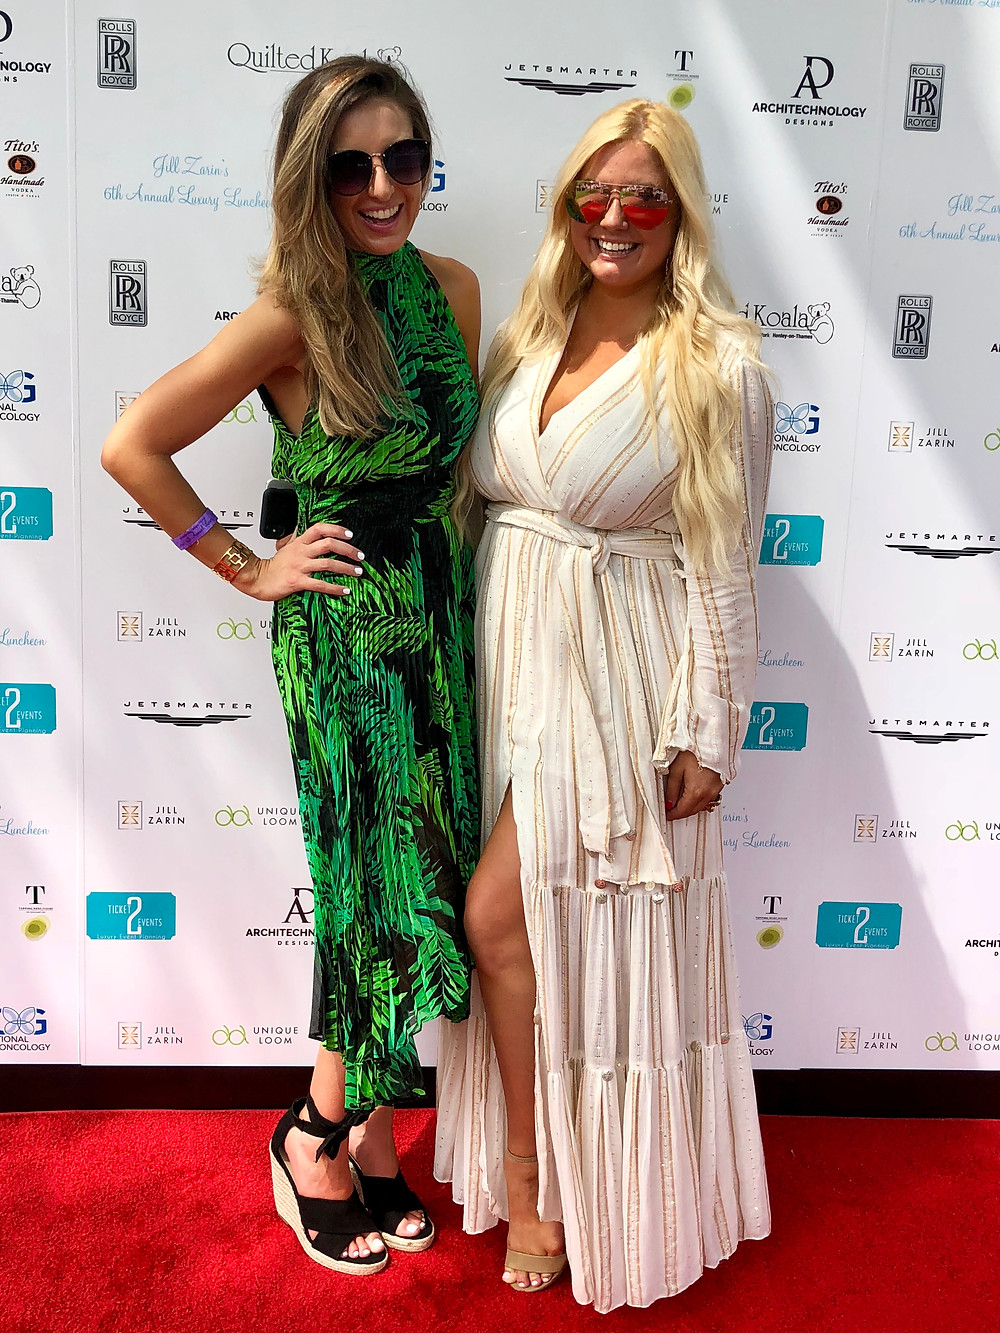 Co-Founders of LLScene Lindsey Swing & Lilly Robbins on the red carpet at Jill Zarin's 6th Annual Luxury Luncheon